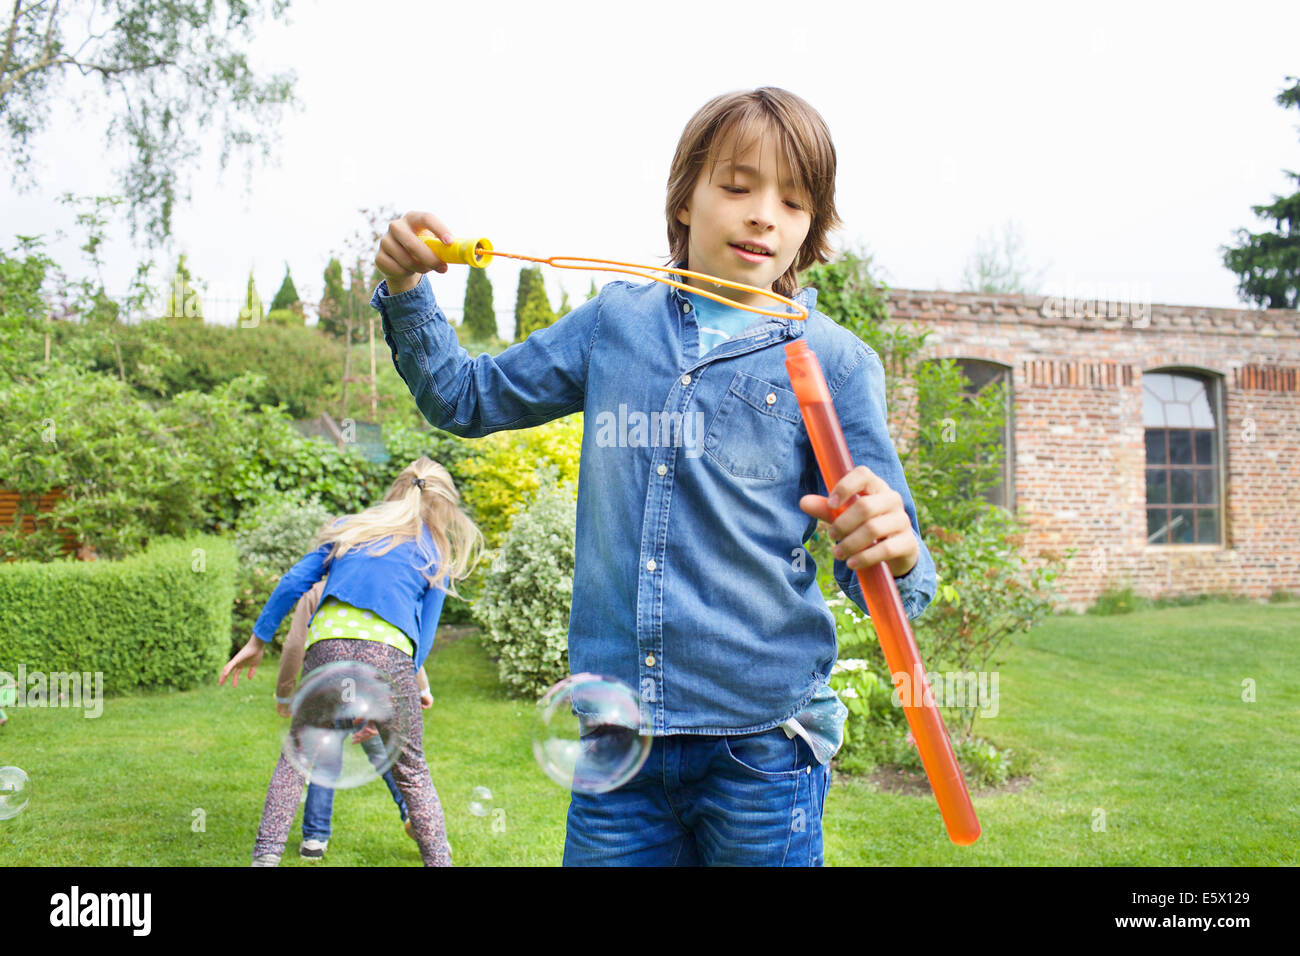 SIblings playing with soap bubbles in garden - Stock Image